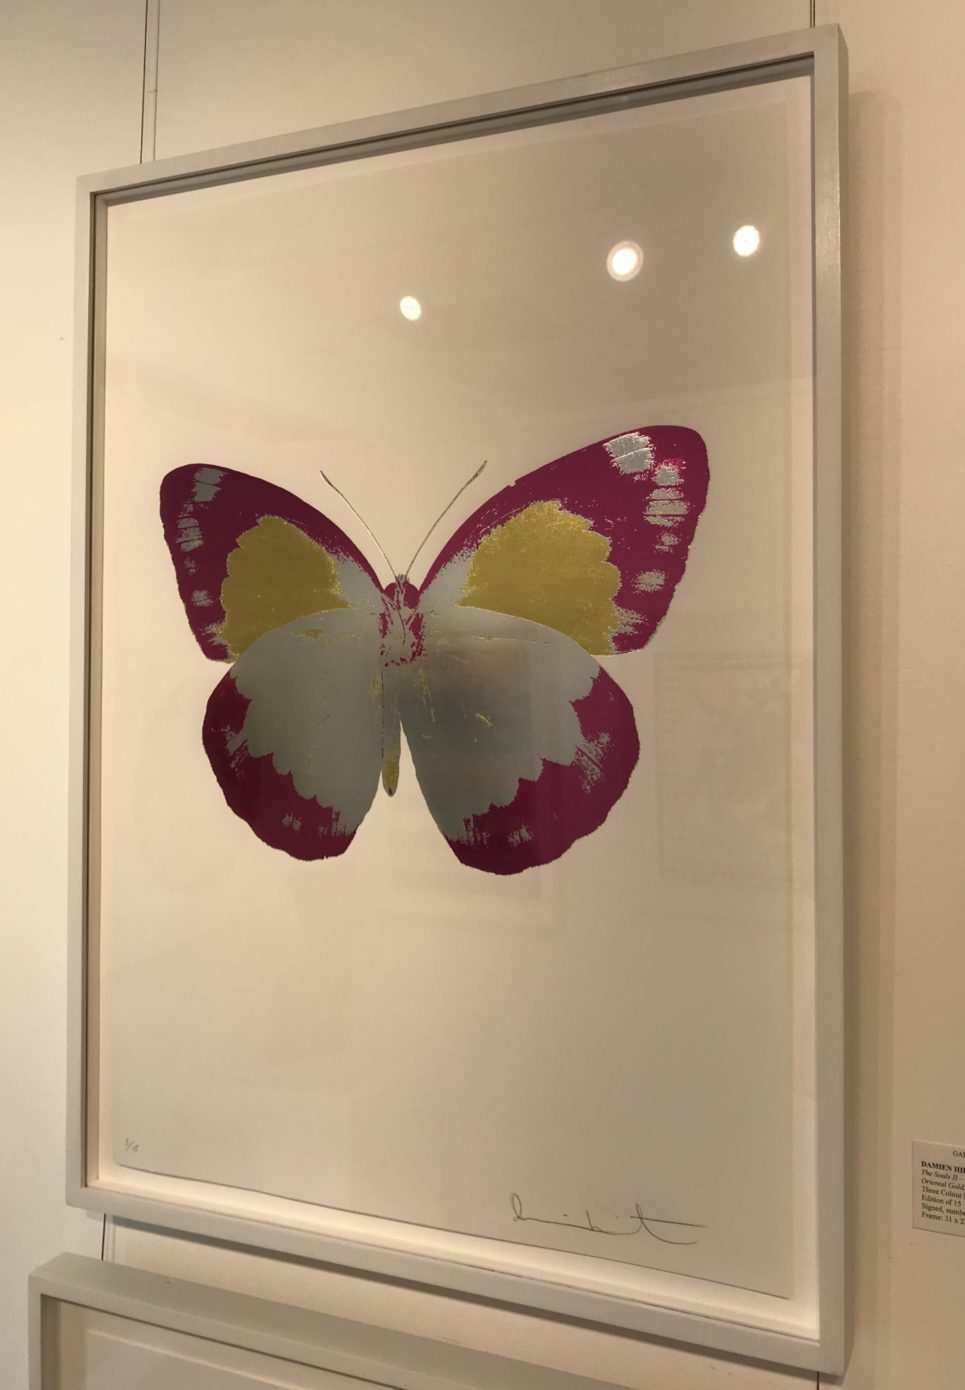 damien-hirst-the-souls-ii-silver-gloss-fuchsia-pink-oriental-gold-framed